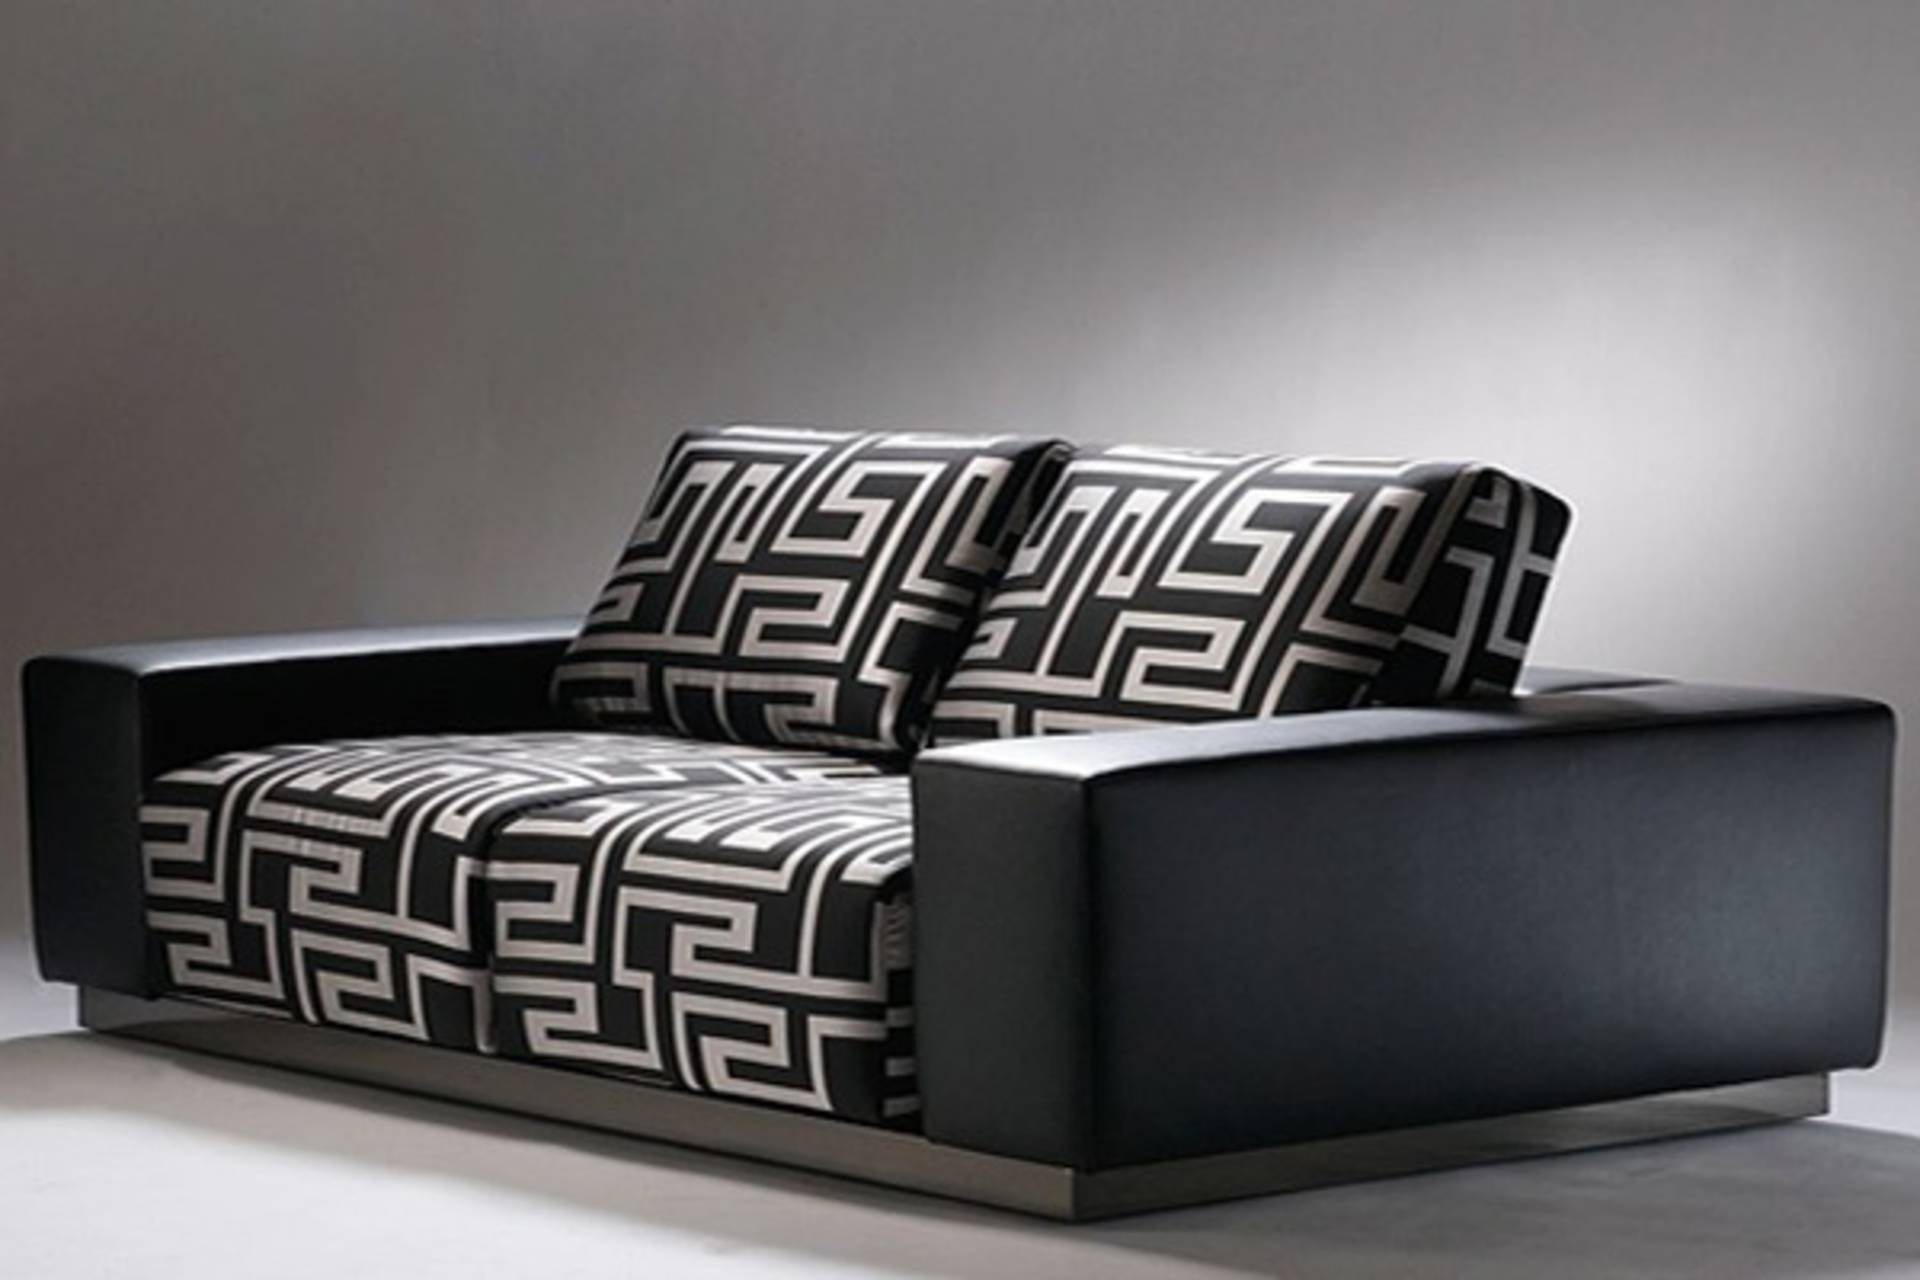 Pleasant Versace Sofa Collection For Your Living Room Home Reviews Uwap Interior Chair Design Uwaporg